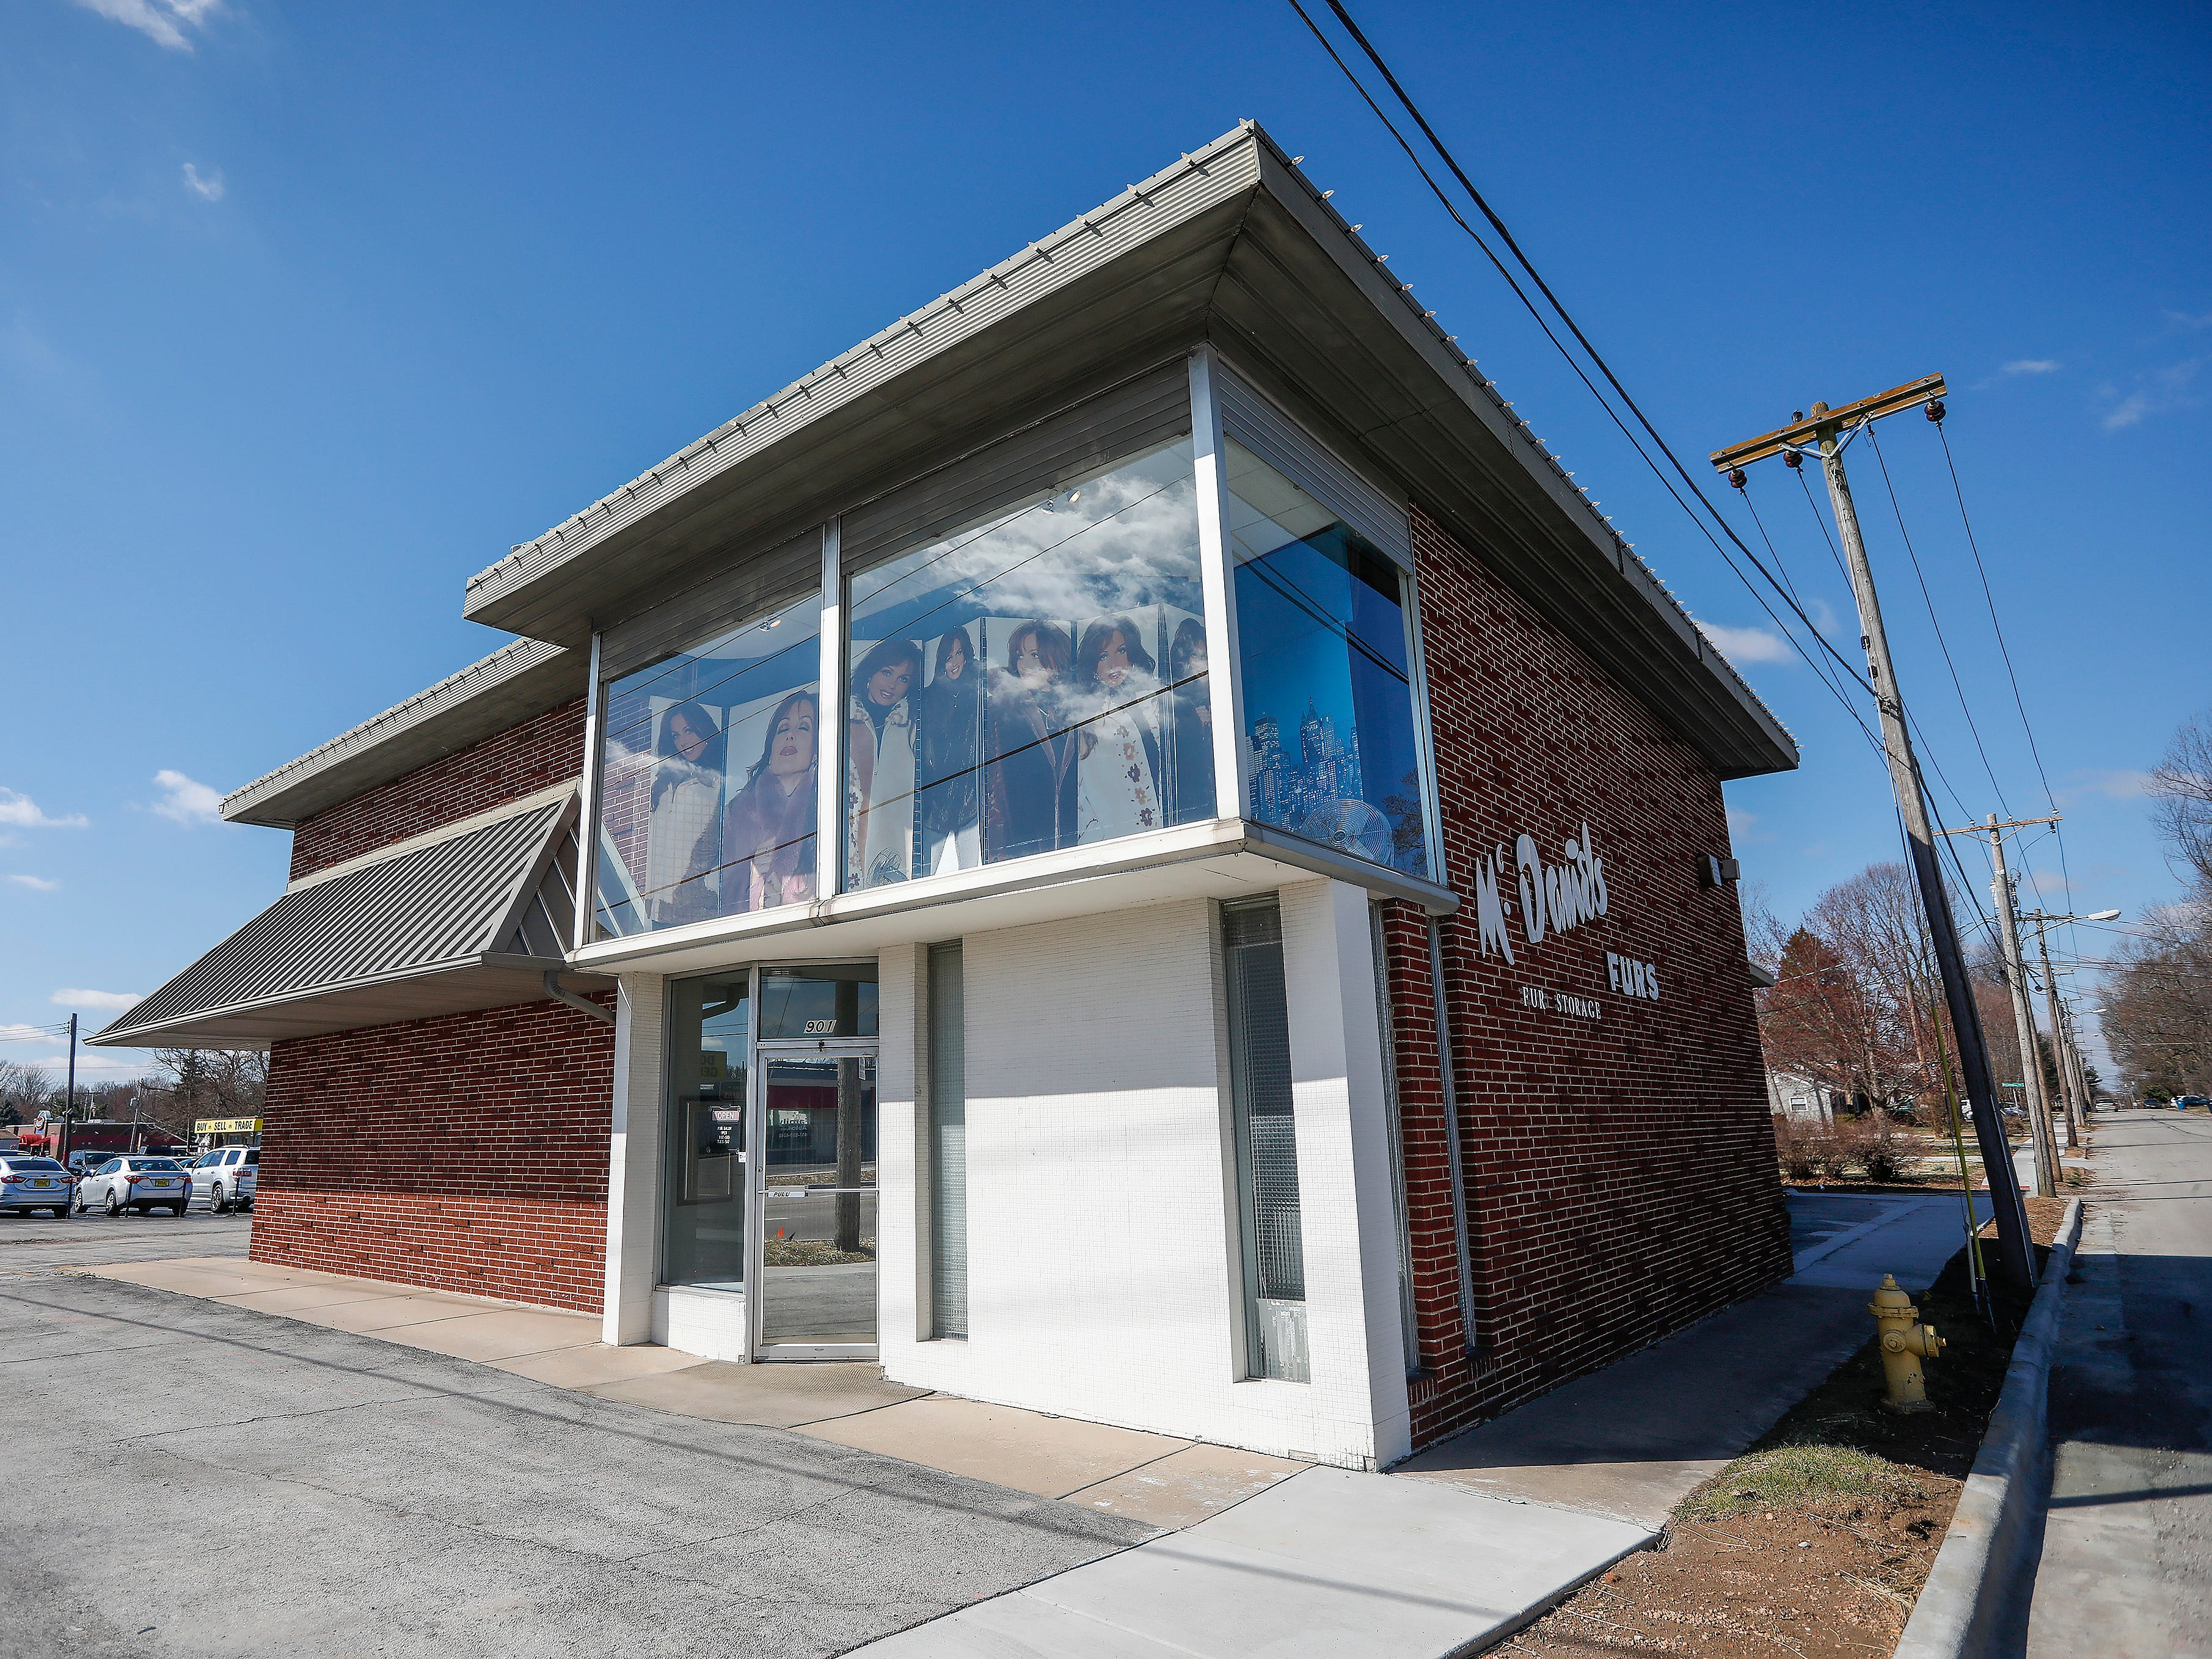 McDaniel Furs is located at 901 S. Glenstone Ave.